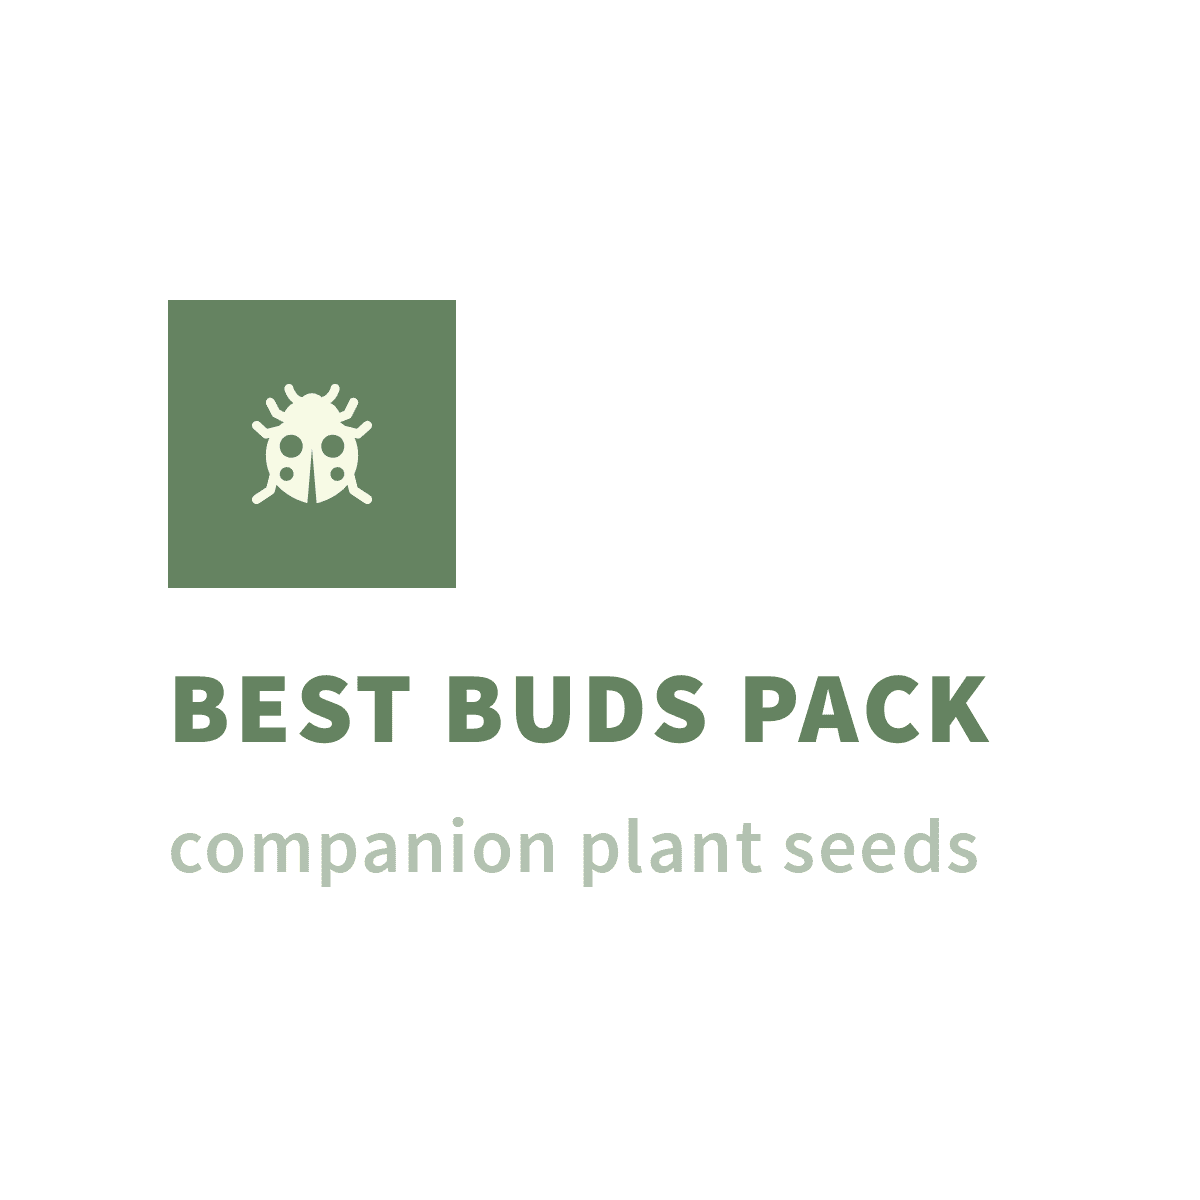 Borage Seeds (Borago officinalis) BEST BUDS PACK companion plant seeds